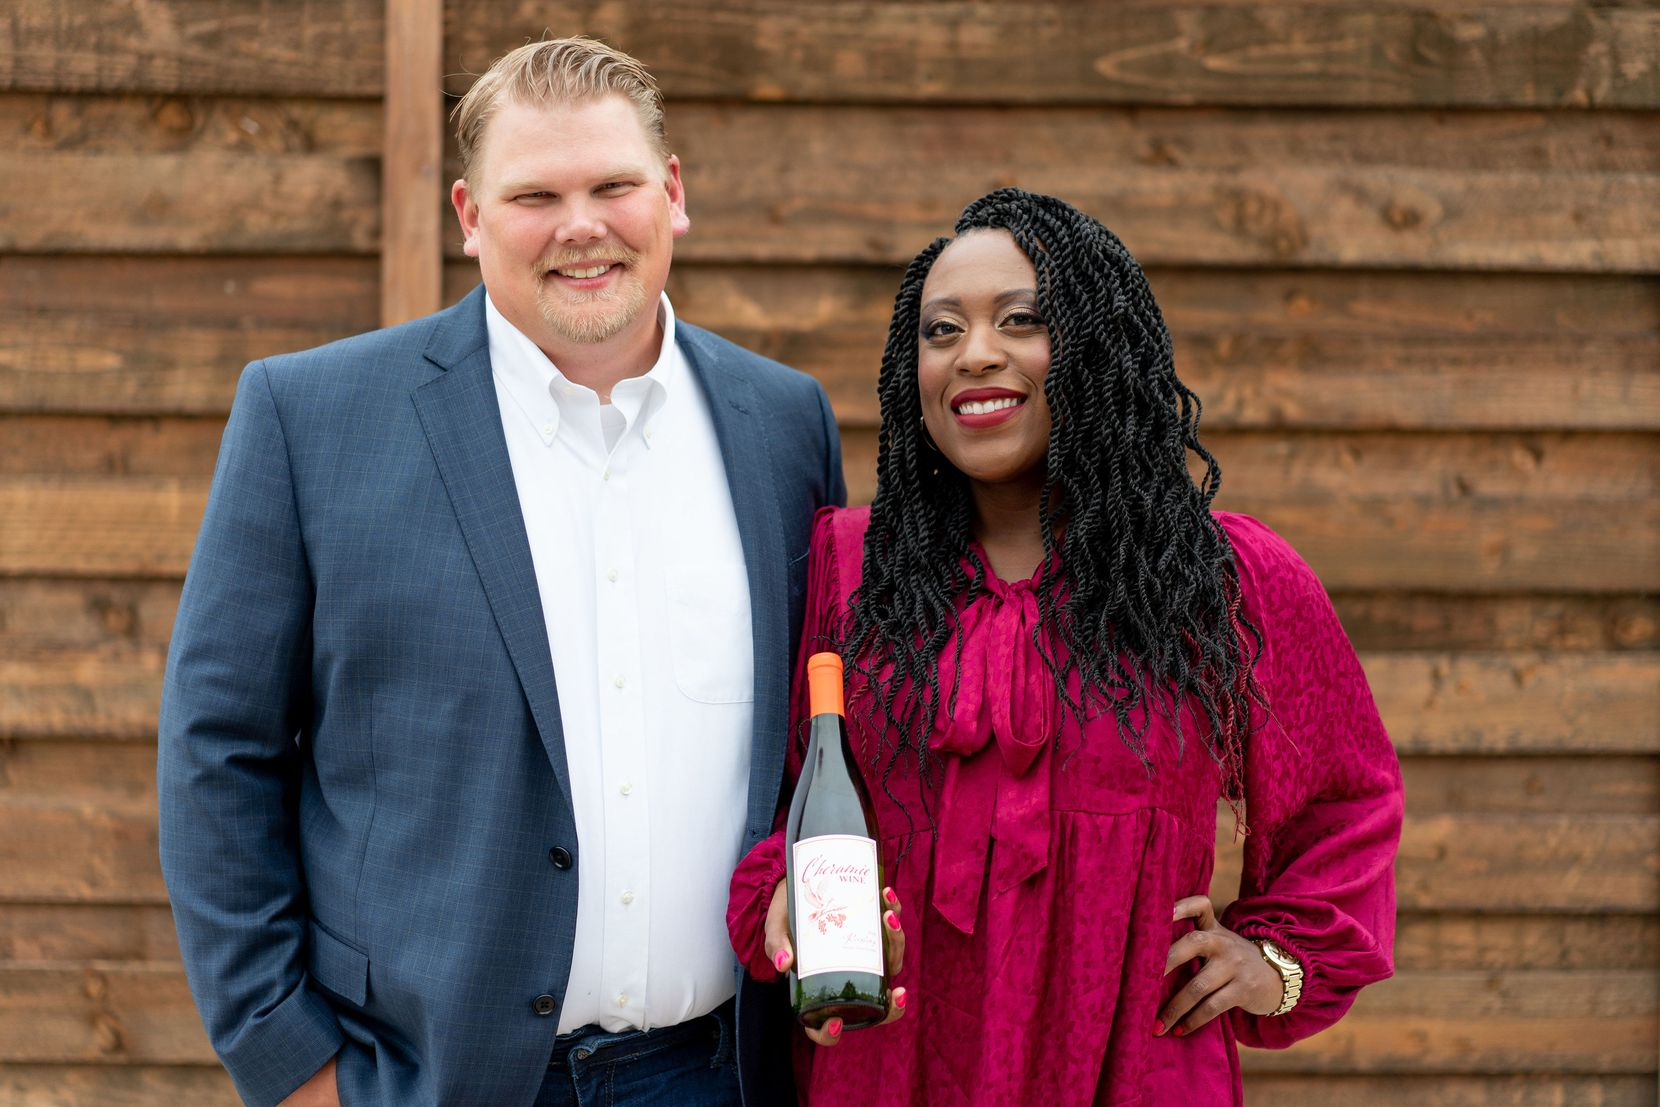 Cheramie Law and husband Todd have launched Cheramie Wine, 100% Texas grown and produced wine.